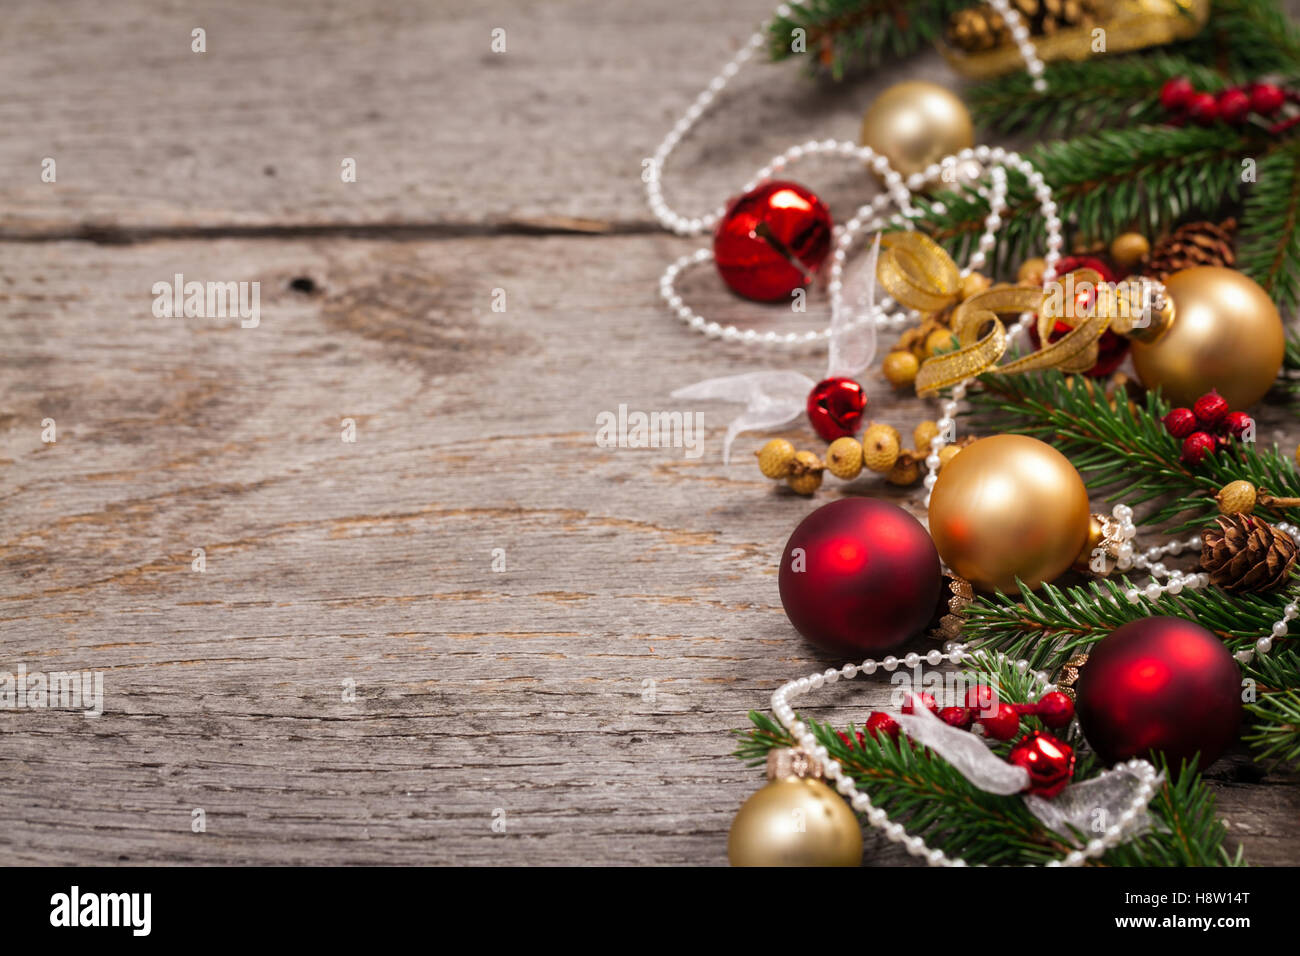 christmas and new year theme background stock photo: 125939544 - alamy